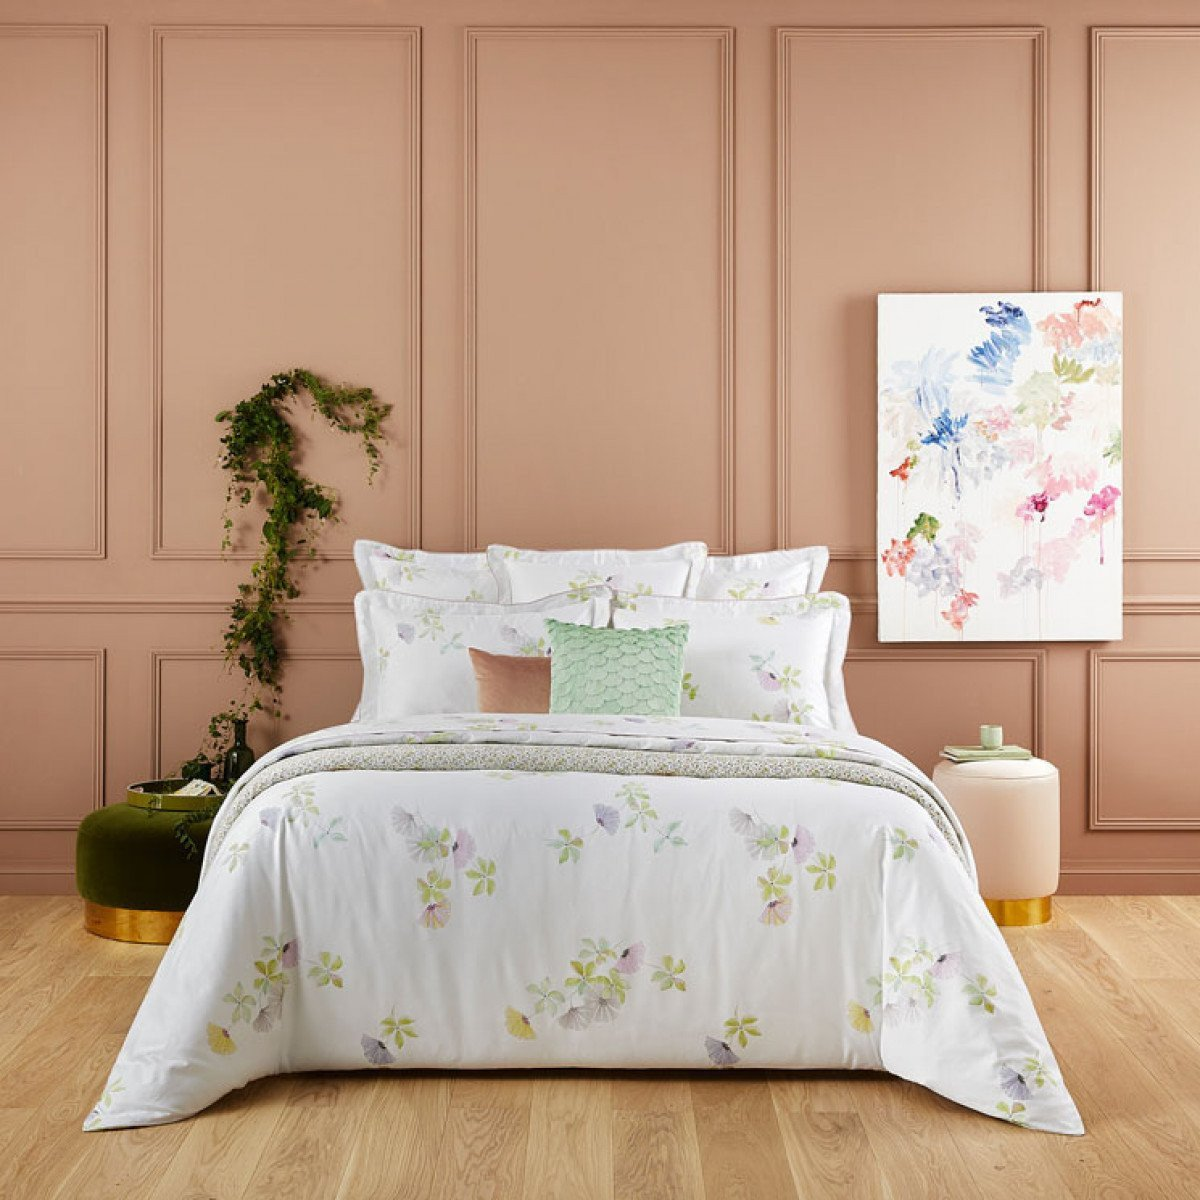 EPURE Bed Series